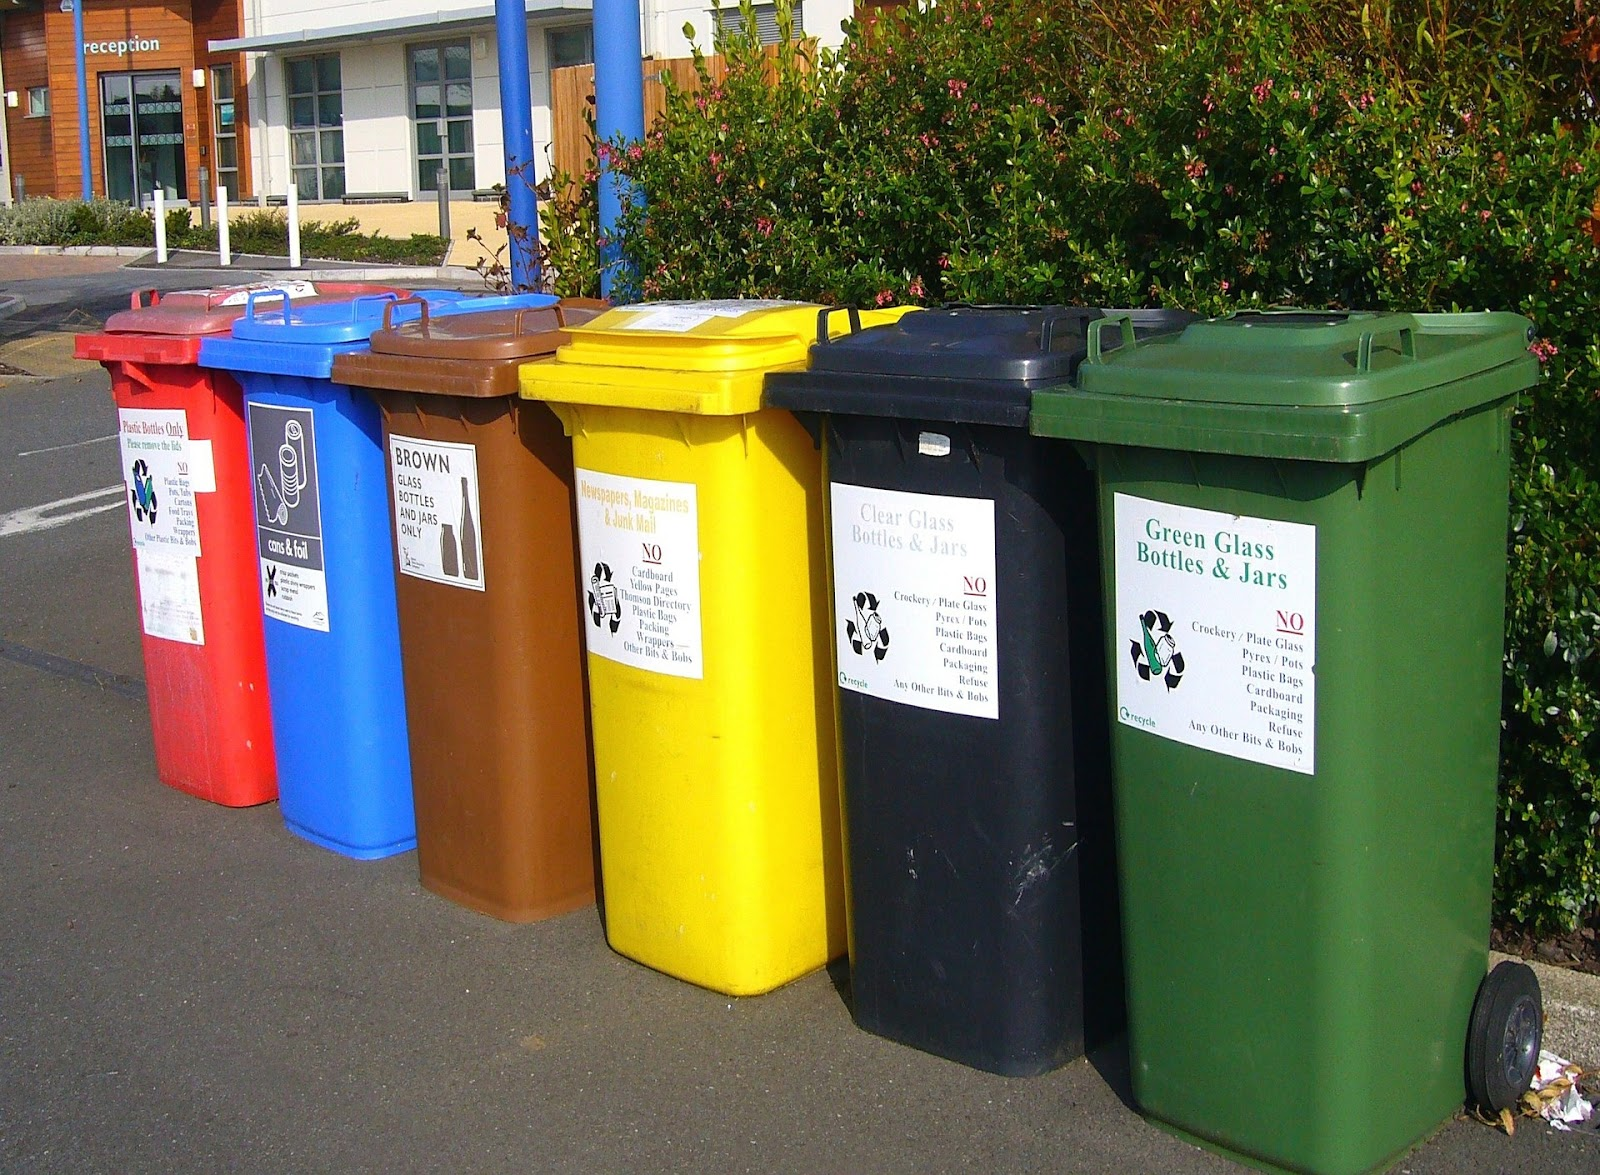 Eco-Friendly Event Planning with Recycling Bins